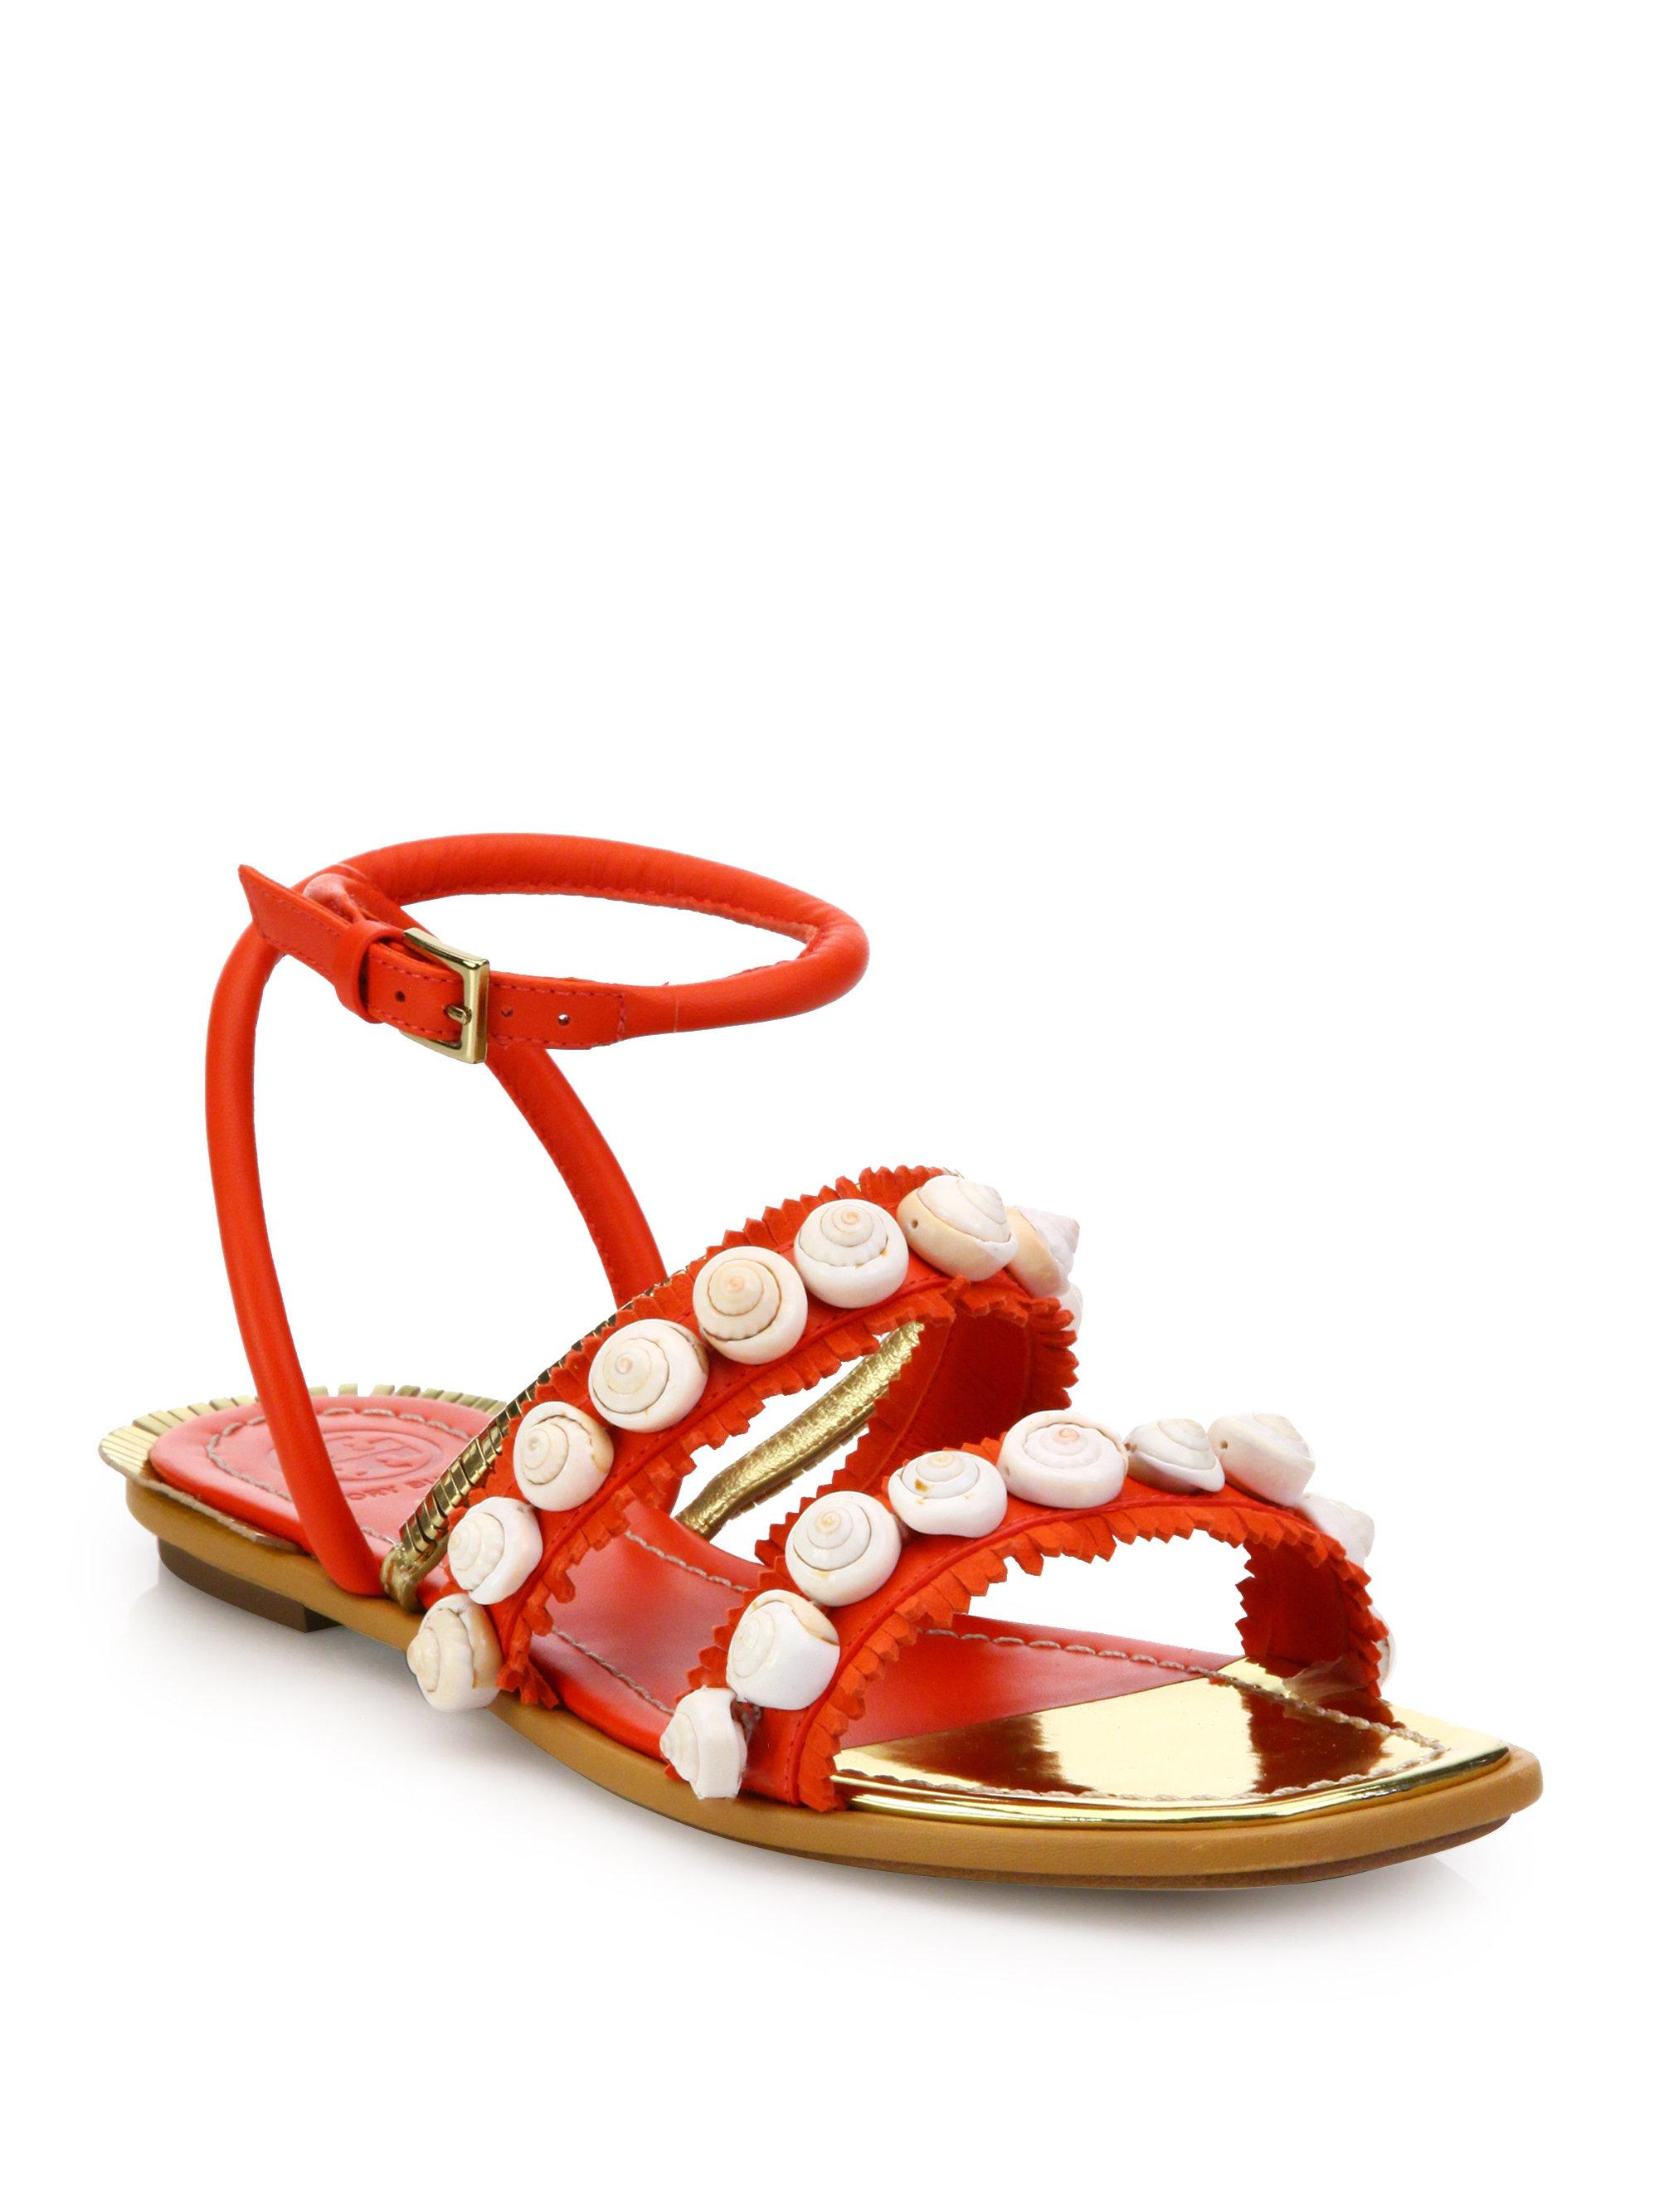 08d598fd0d0725 Lyst - Tory Burch Sinclair Embellished Leather Sandals in Red